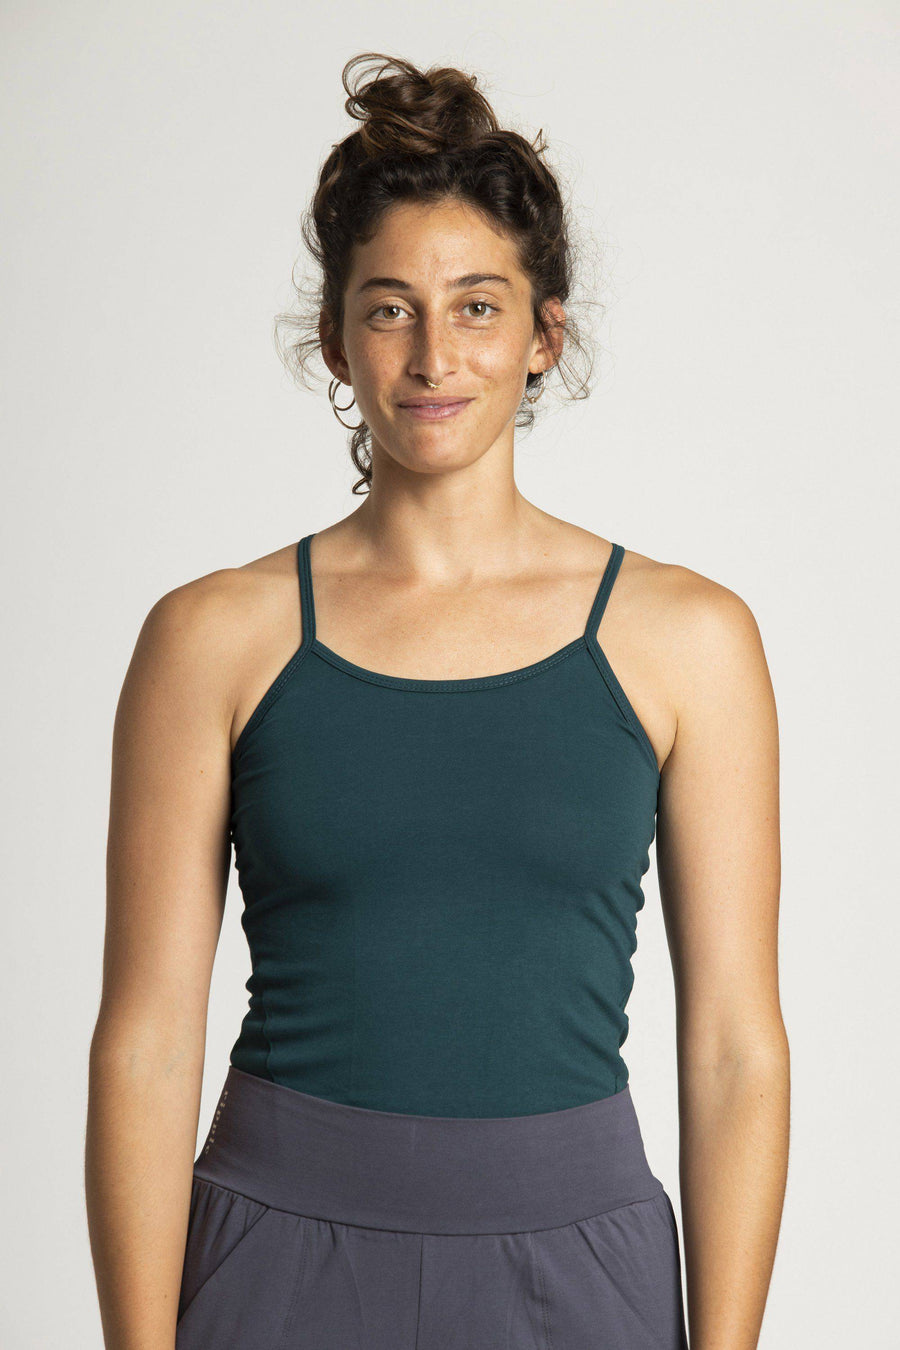 Organic Cotton Criss Cross Tank Top womens clothing rippleyogawear